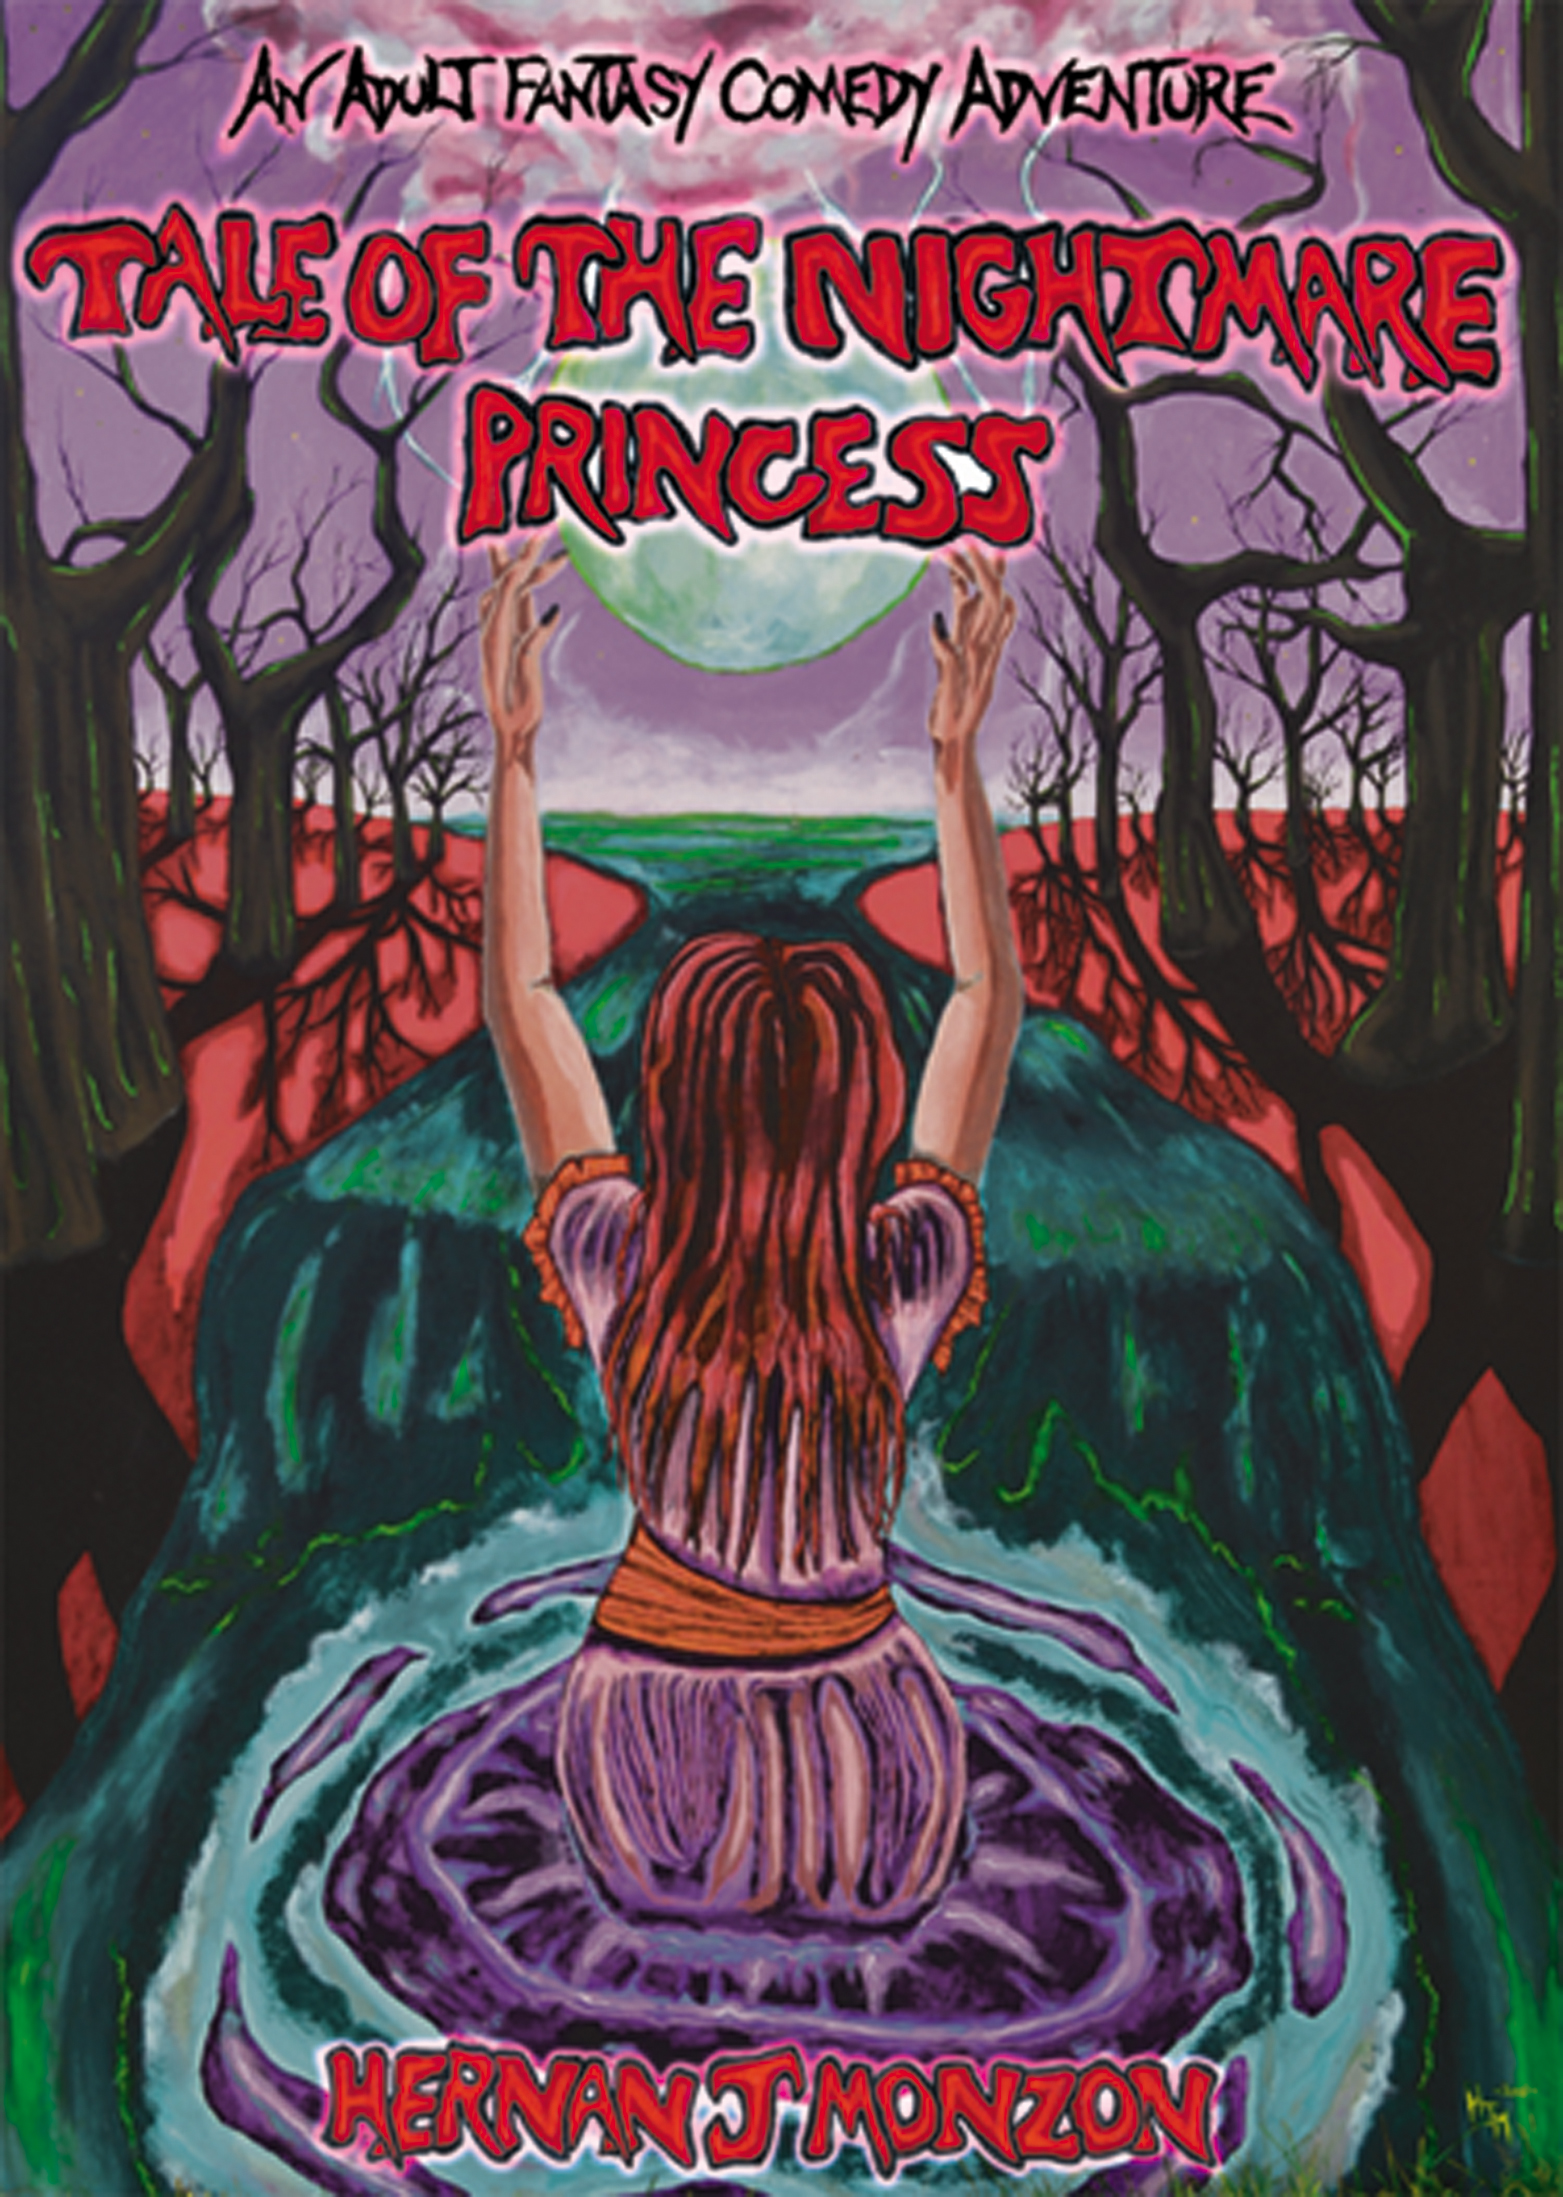 Tale of the Nightmare Princess: An Adult Comedy Fantasy Adventure